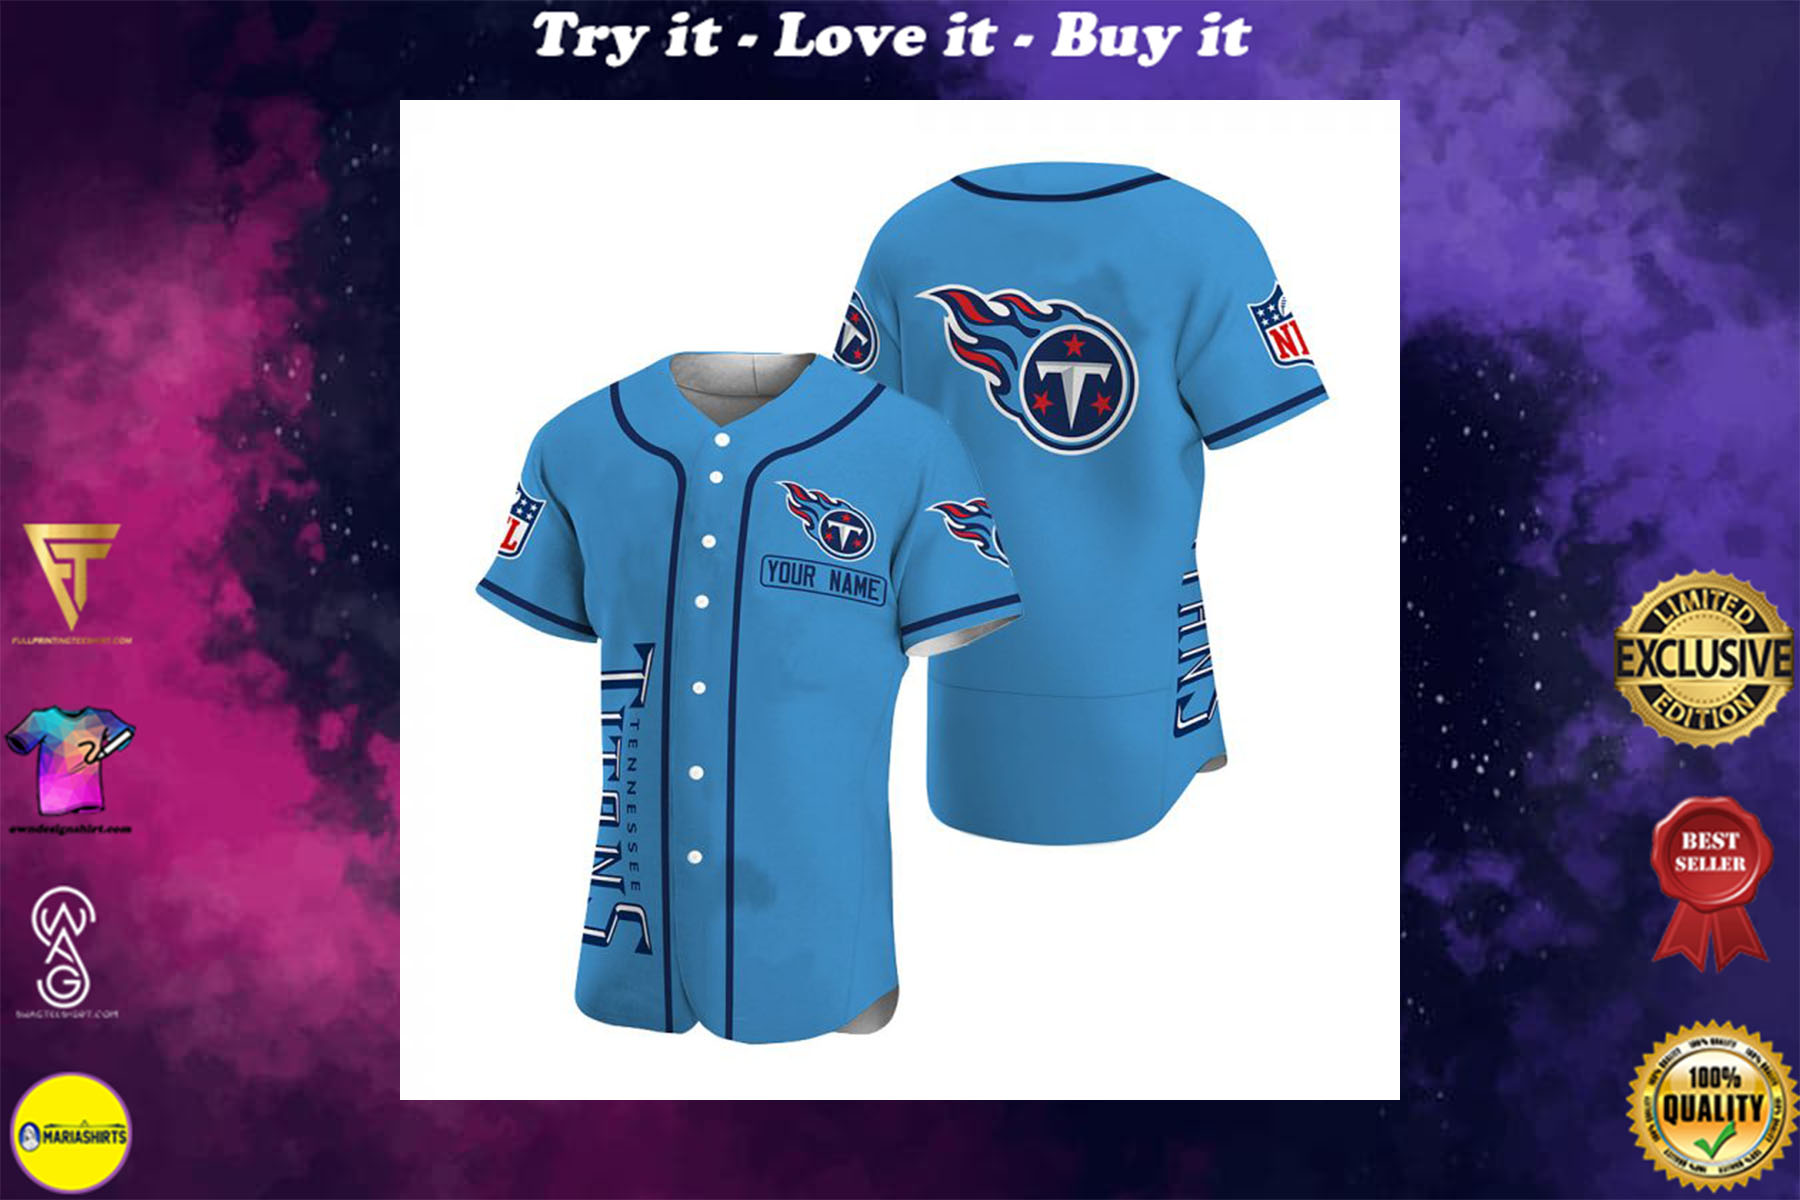 [special edition] personalized name jersey tennessee titans shirt - maria